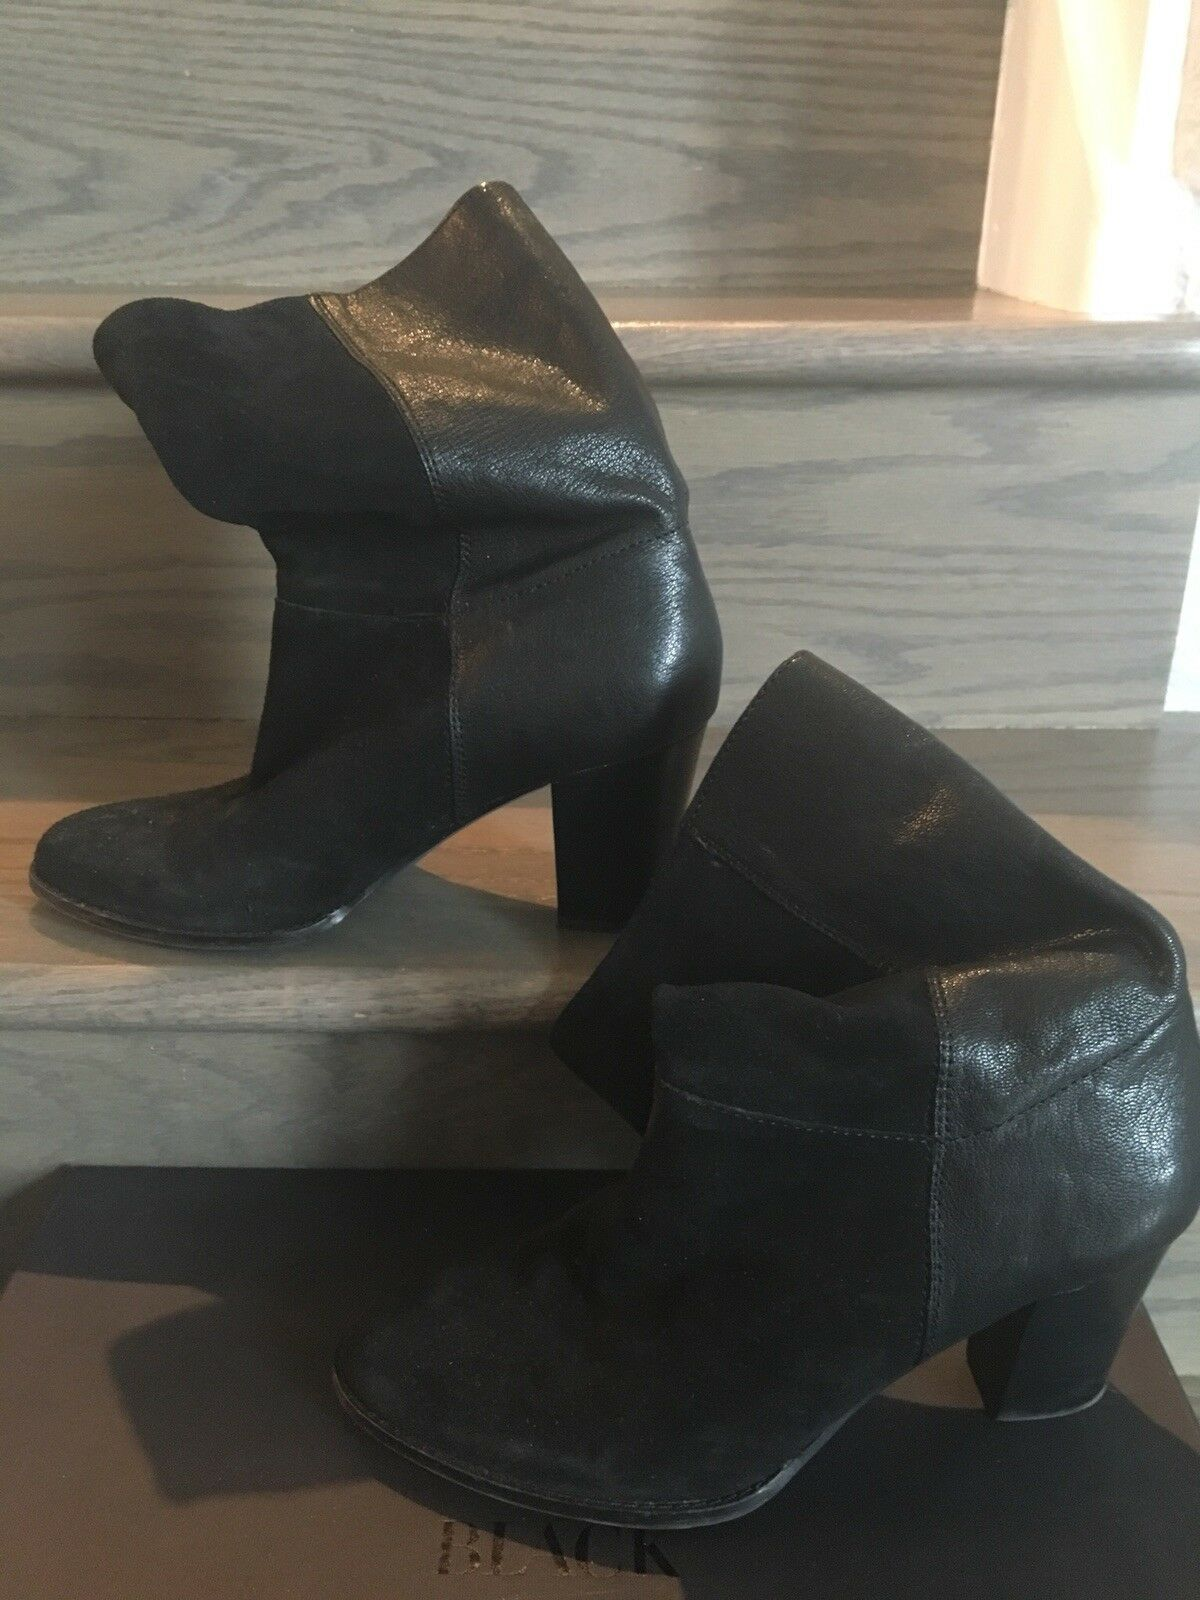 Saks Fifth Ave Selina Black Suede leather Ankle Ankle Ankle Booties Sz 8,5(39)  290 f33adc